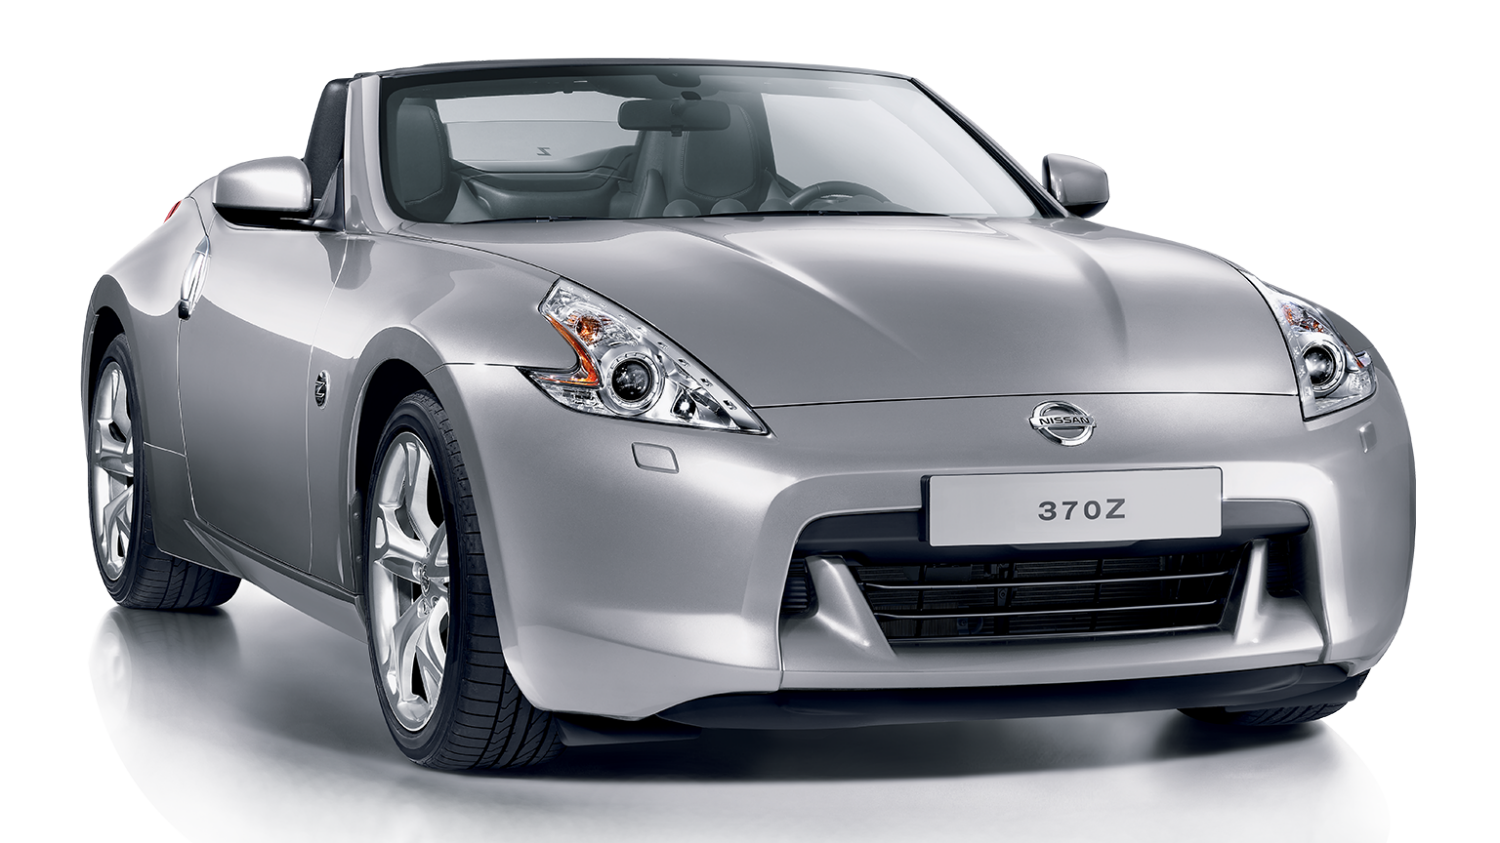 Nissan 370z Coupe Pack - 3/4 front view